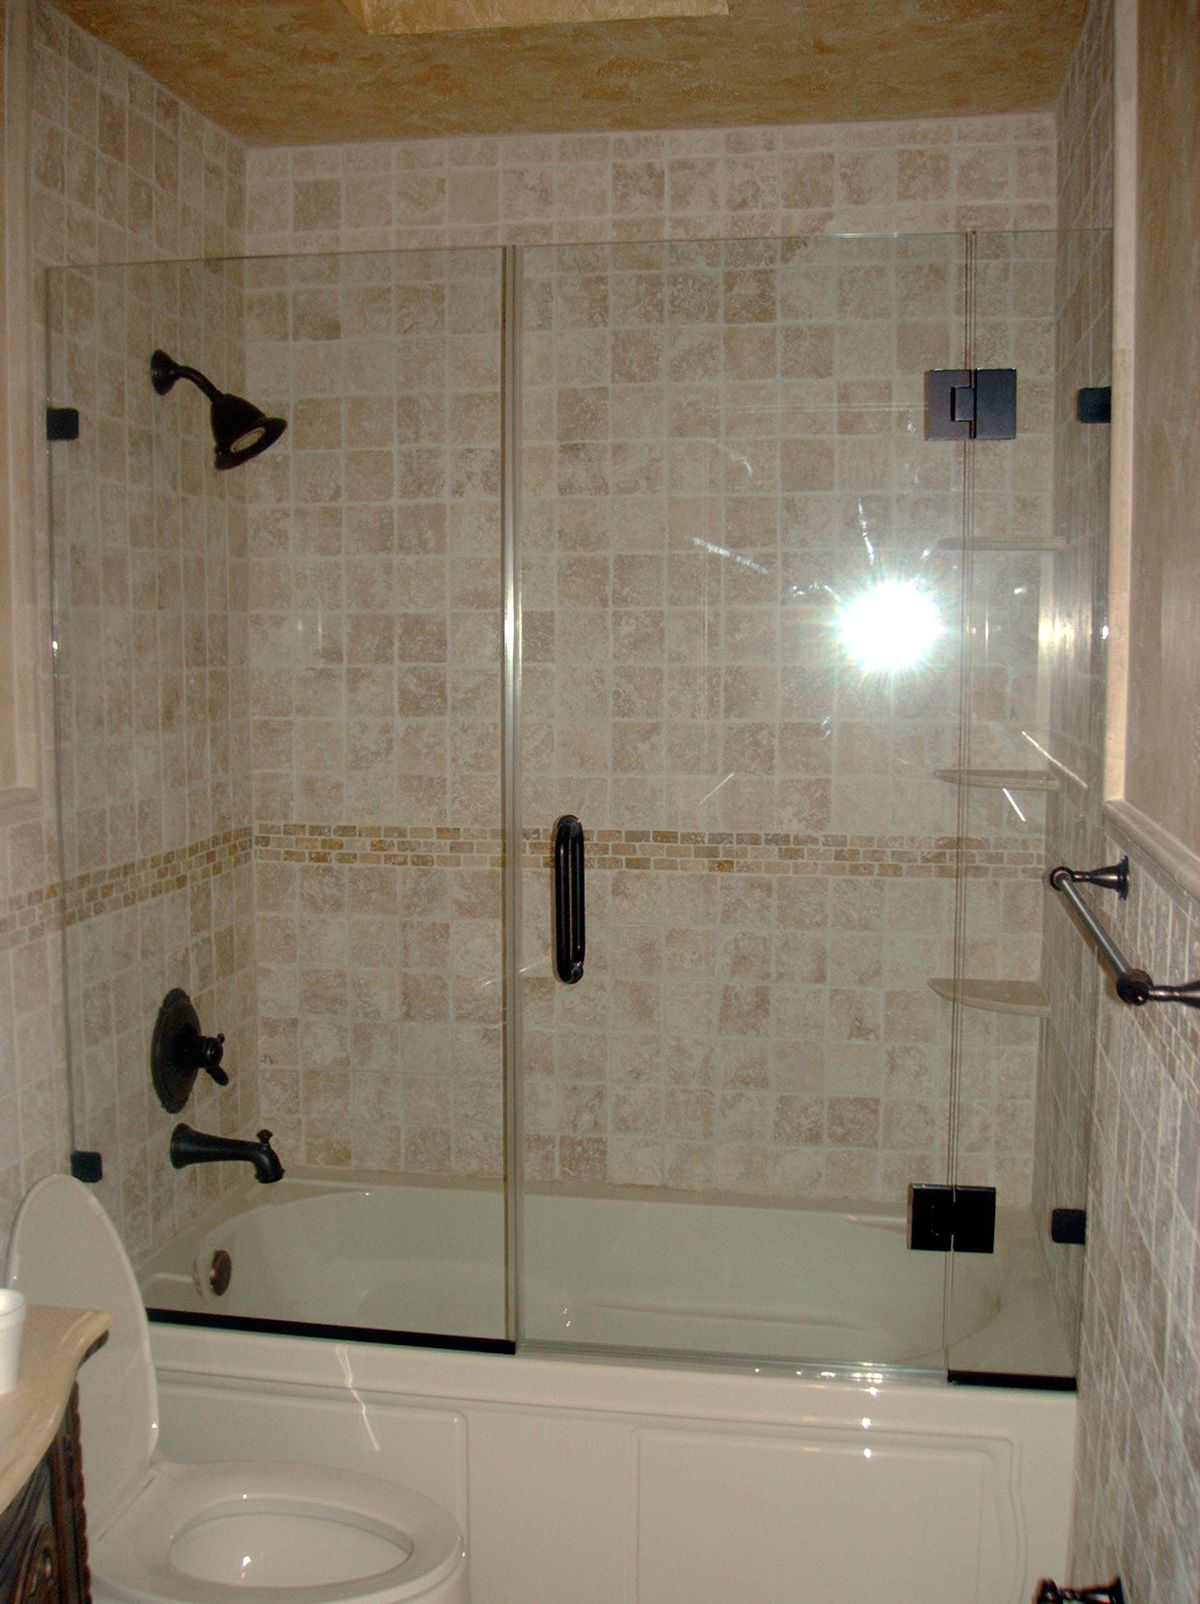 Best Remodel For Tub Shower Enclosure Glass Tub Enclosures